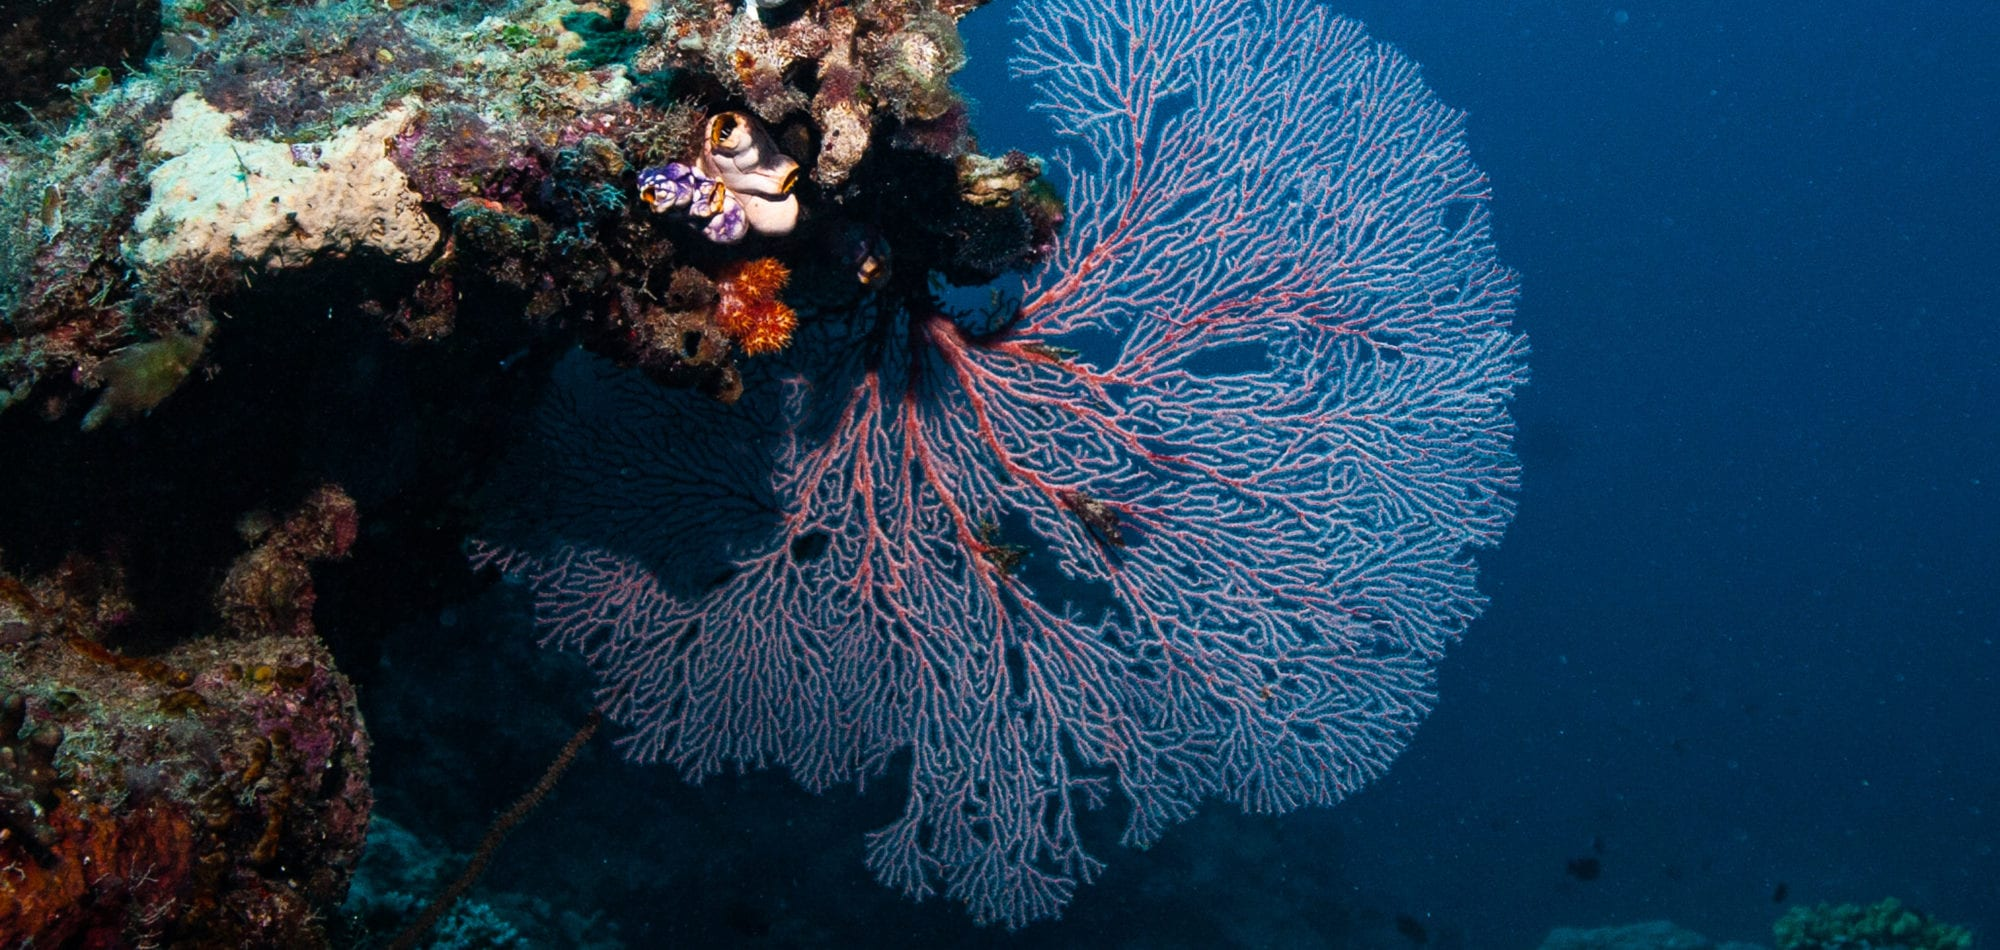 Fan Coral, The Great Barrier Reef